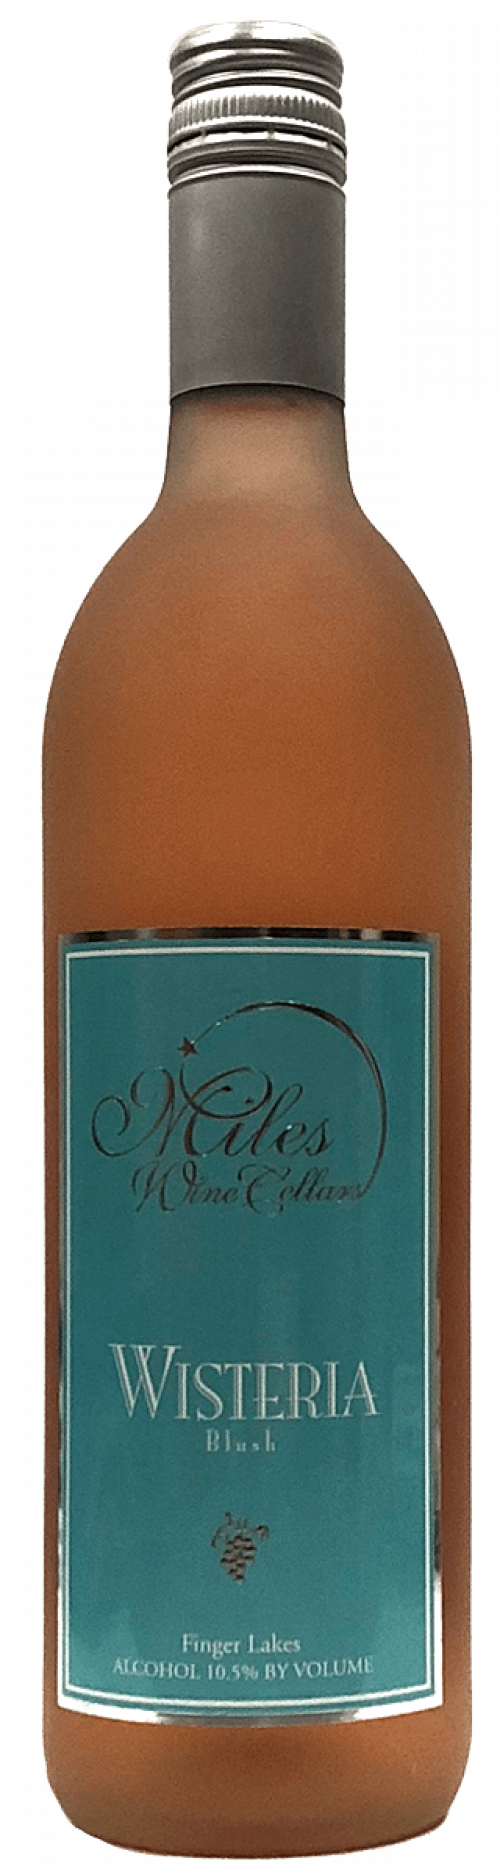 Miles Wine Cellars Wisteria Blush 750ml NV